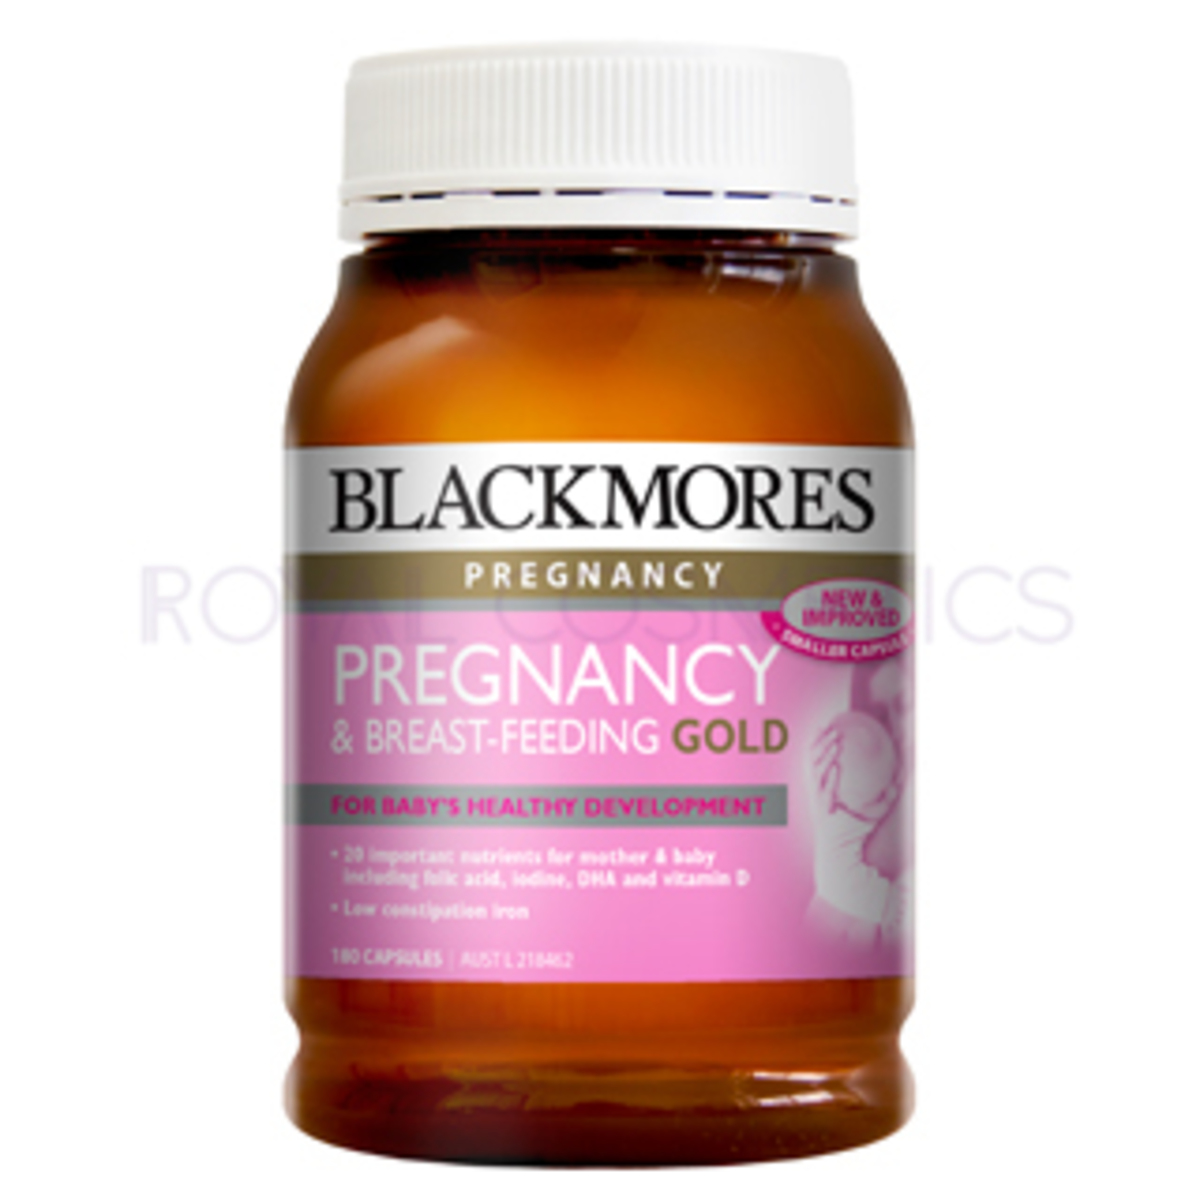 Pregnancy & Breast-Feeding Gold 180 capsules (EXP. 2020. 08) [Parallel Import] (9300807287316)